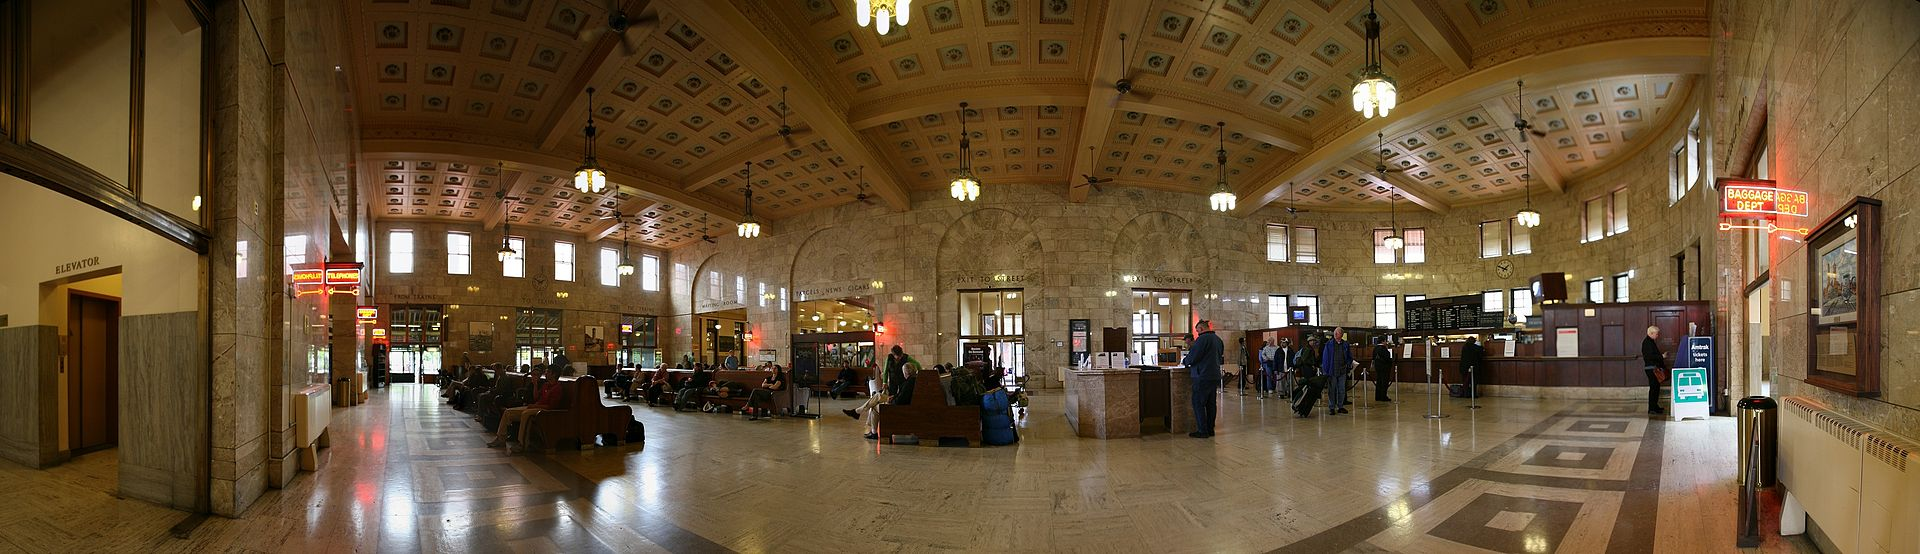 Union Station PDX